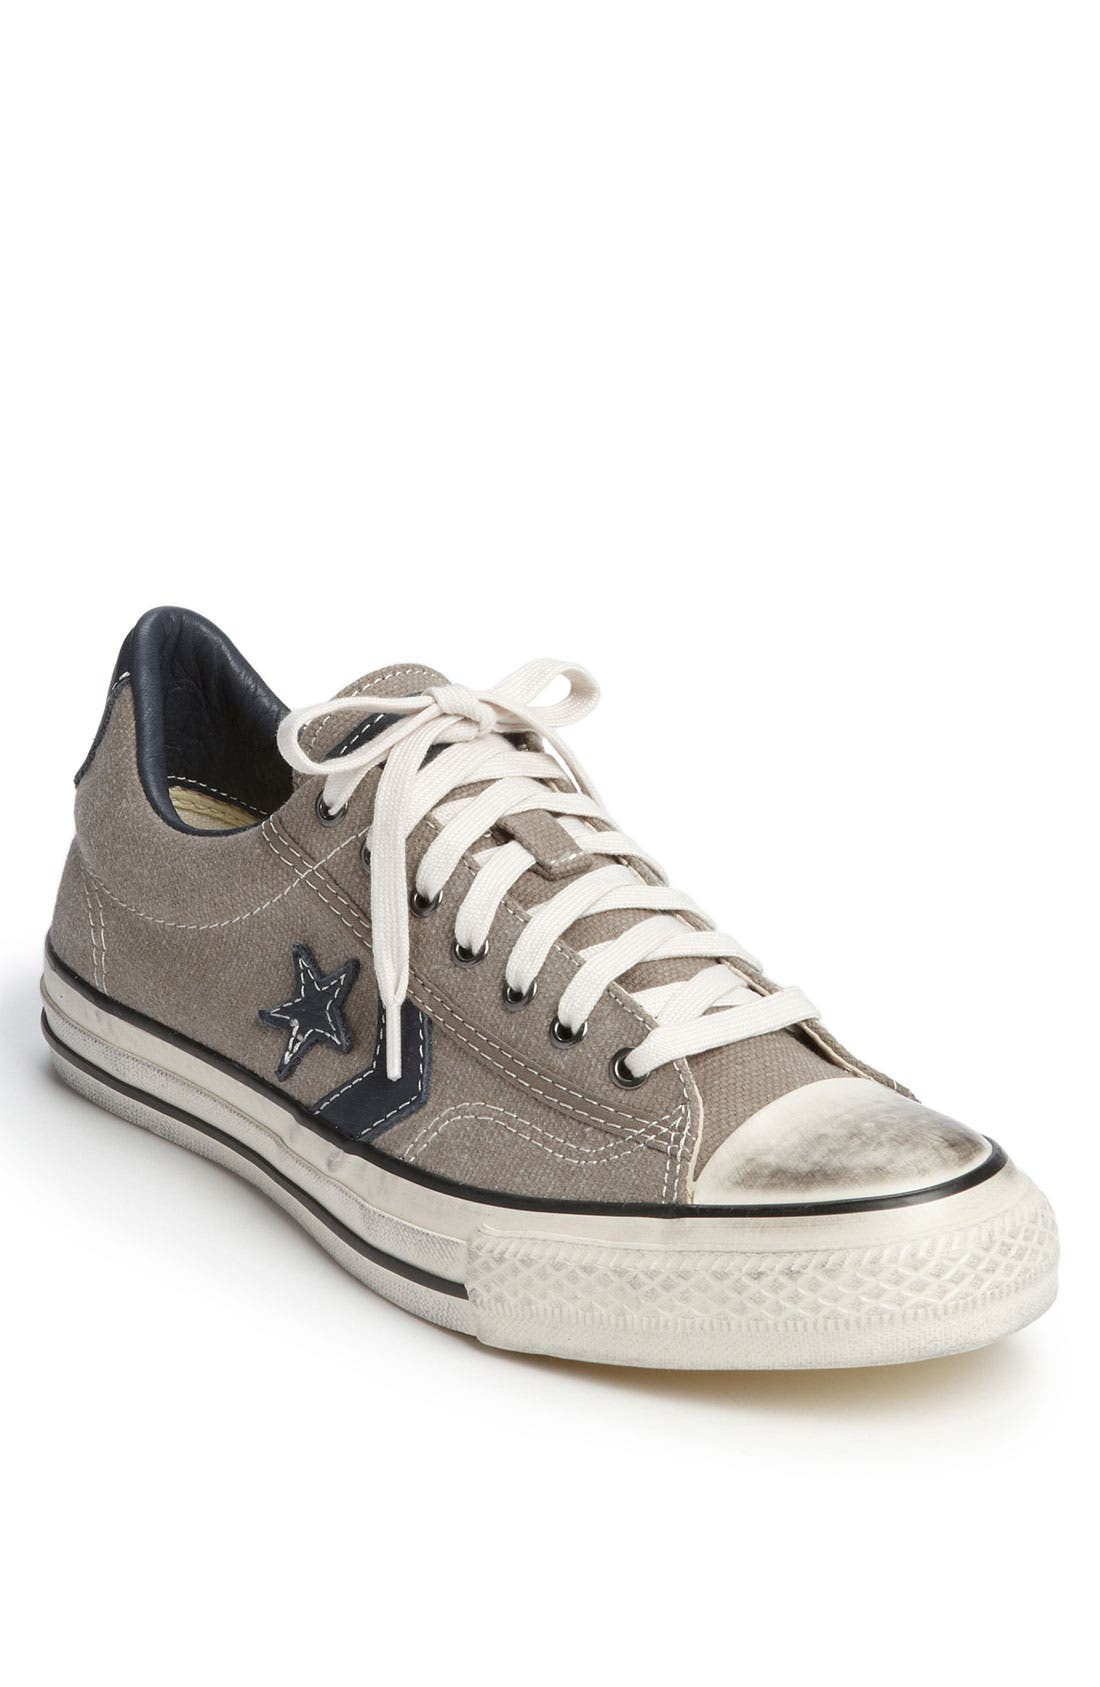 Main Image - Converse by John Varvatos 'Star Player' Canvas Sneaker